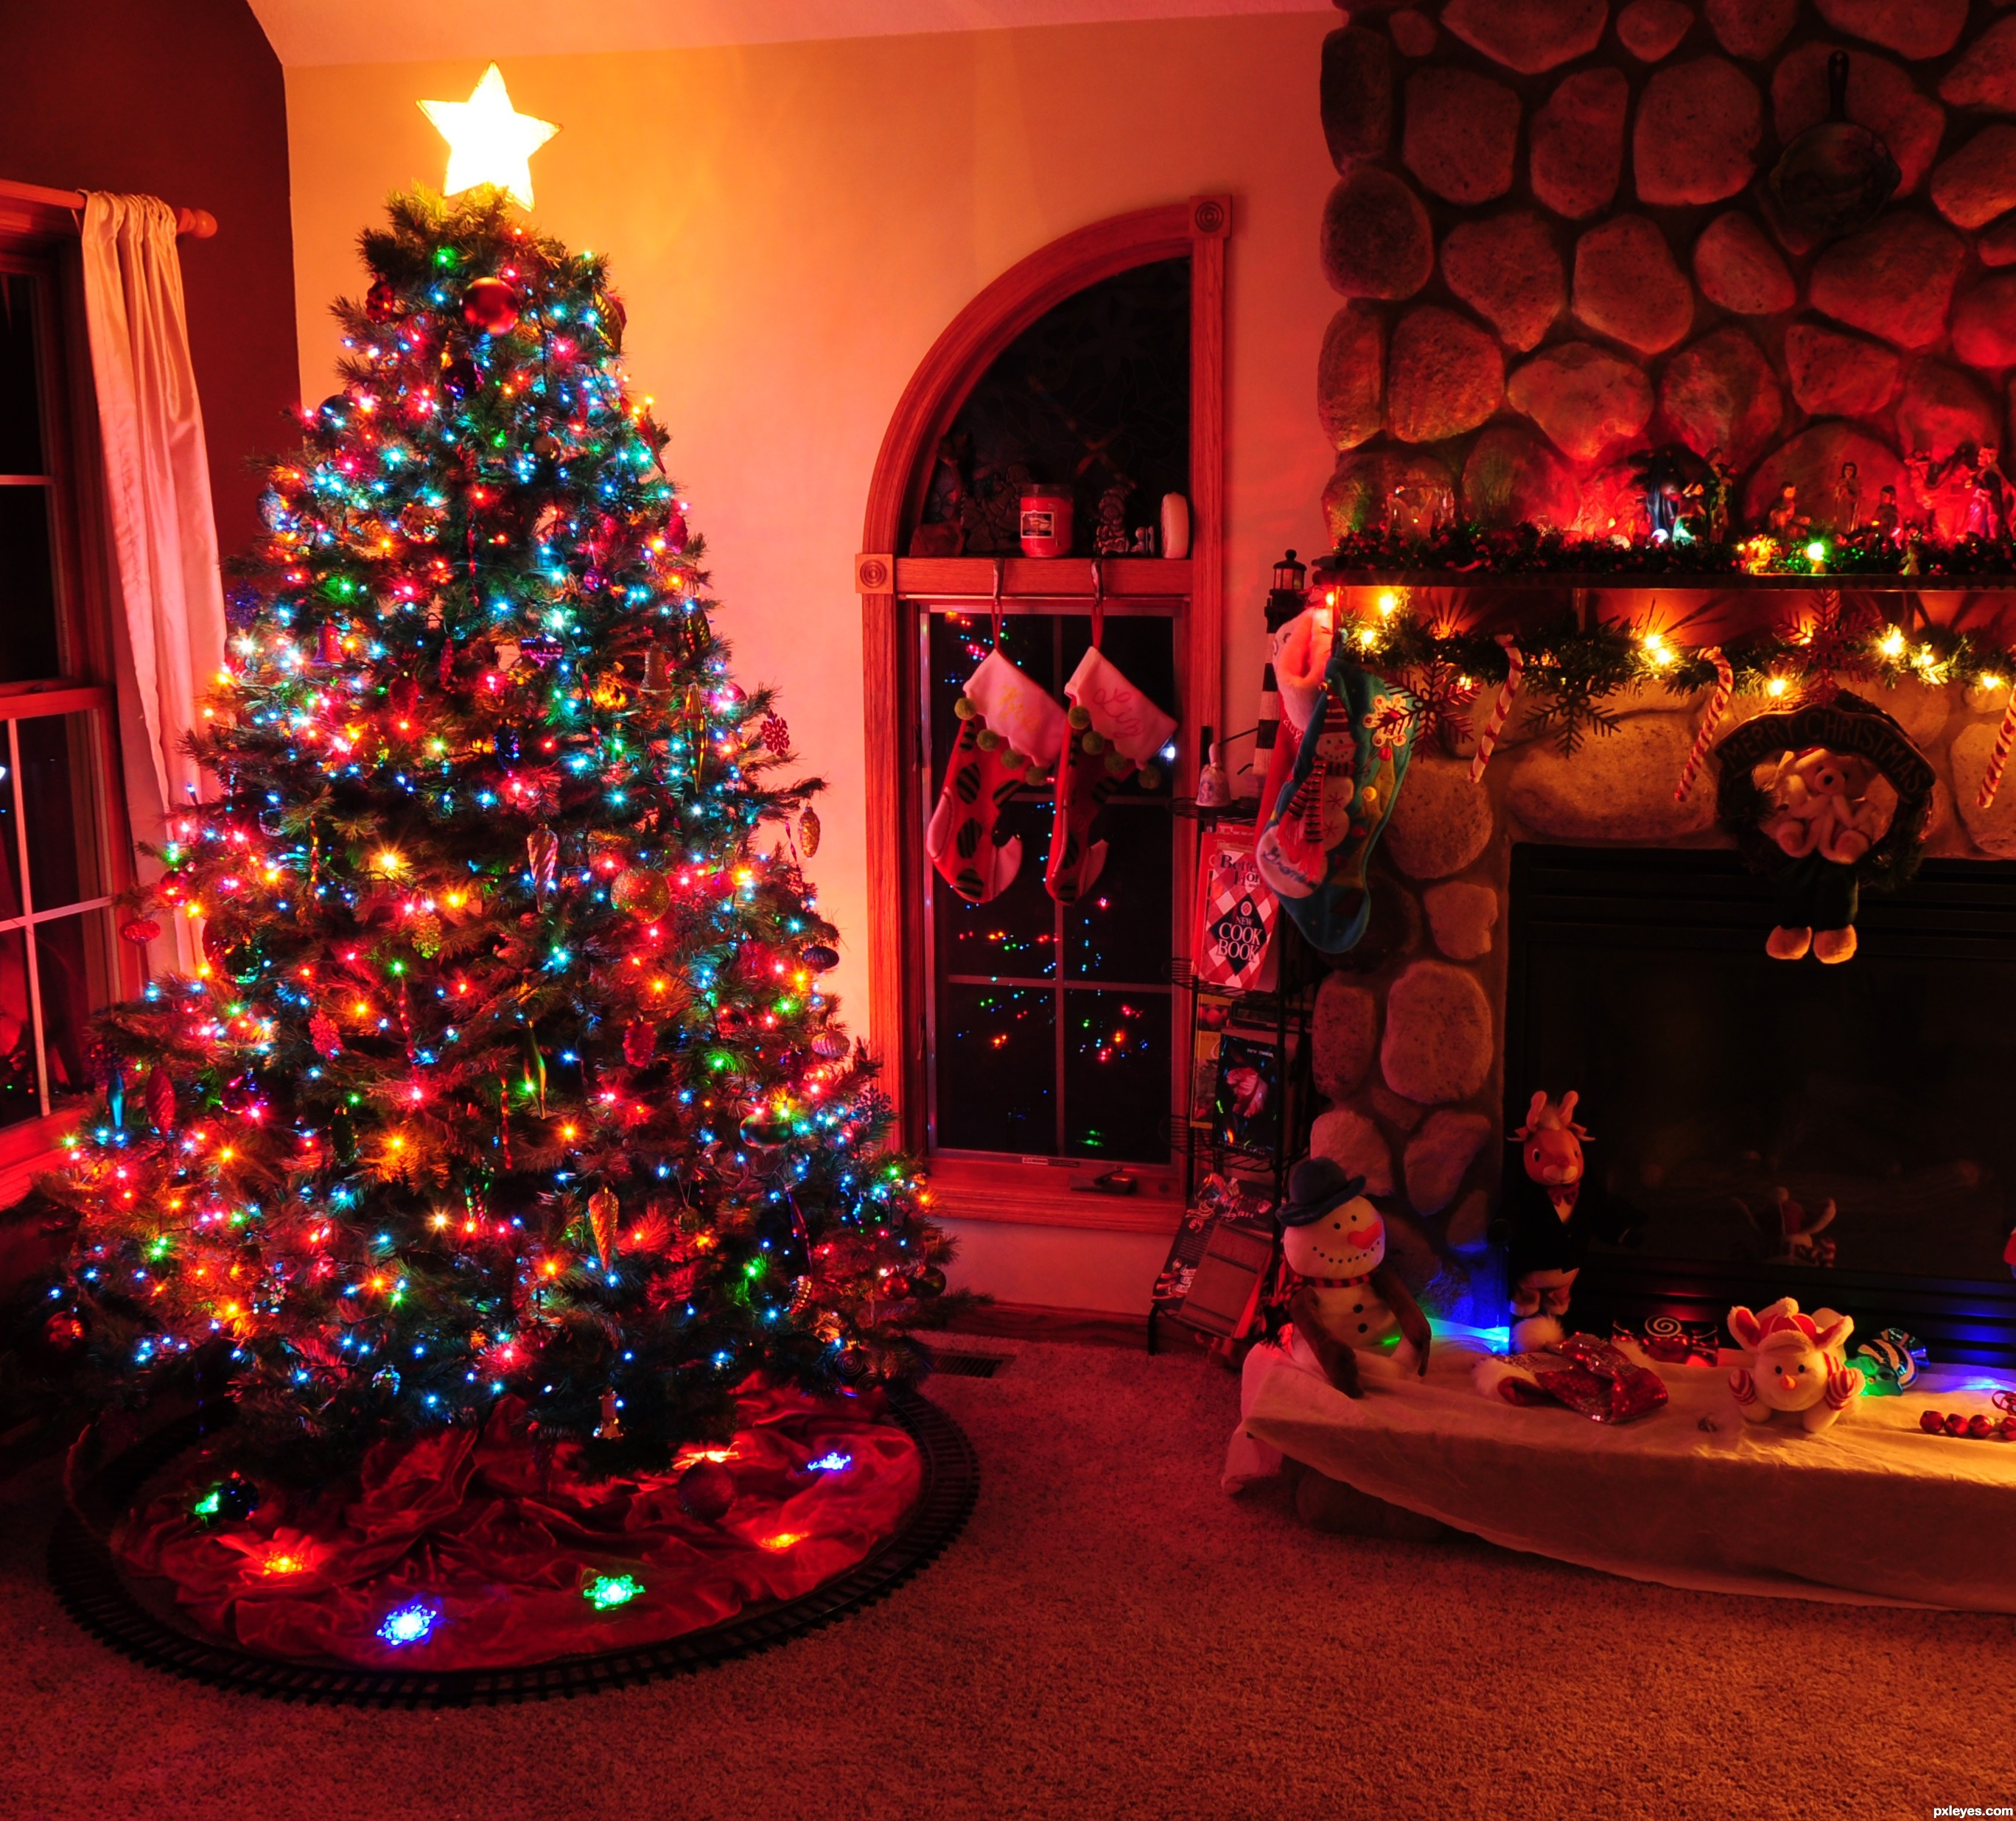 oh christmas tree picture,lcoleman21592 for: christmas